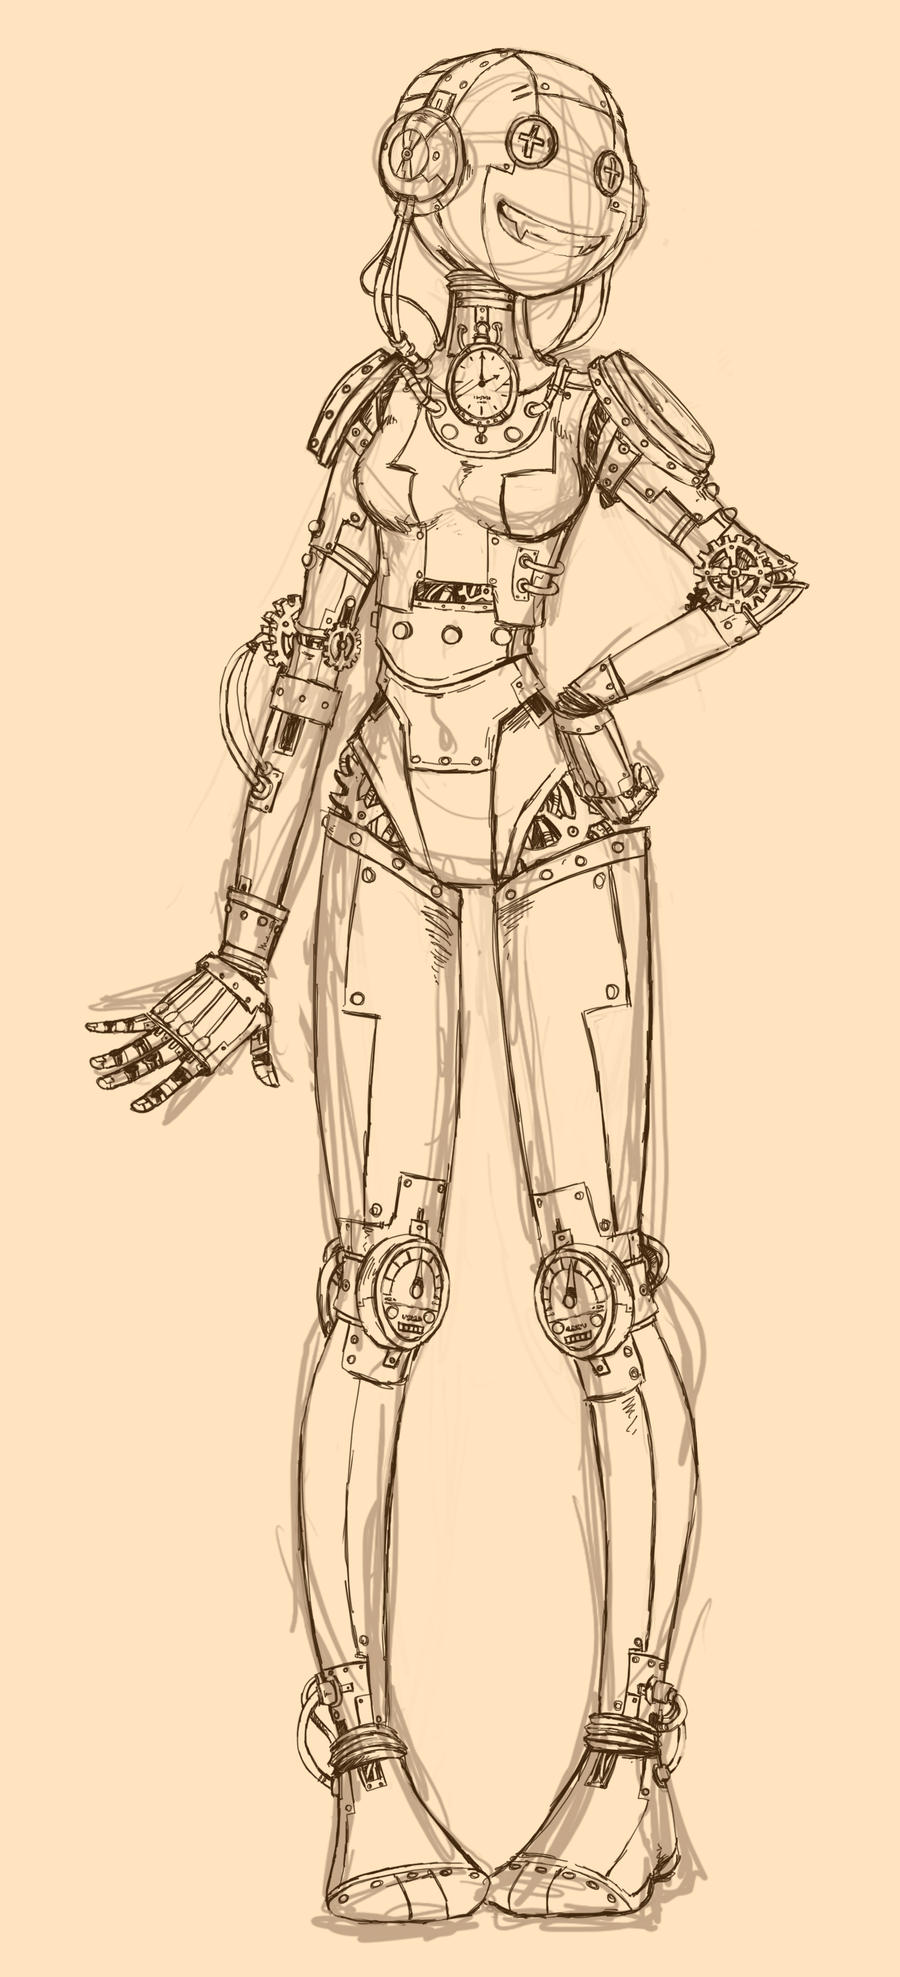 Robot- sketch on photoshop by Kawanai